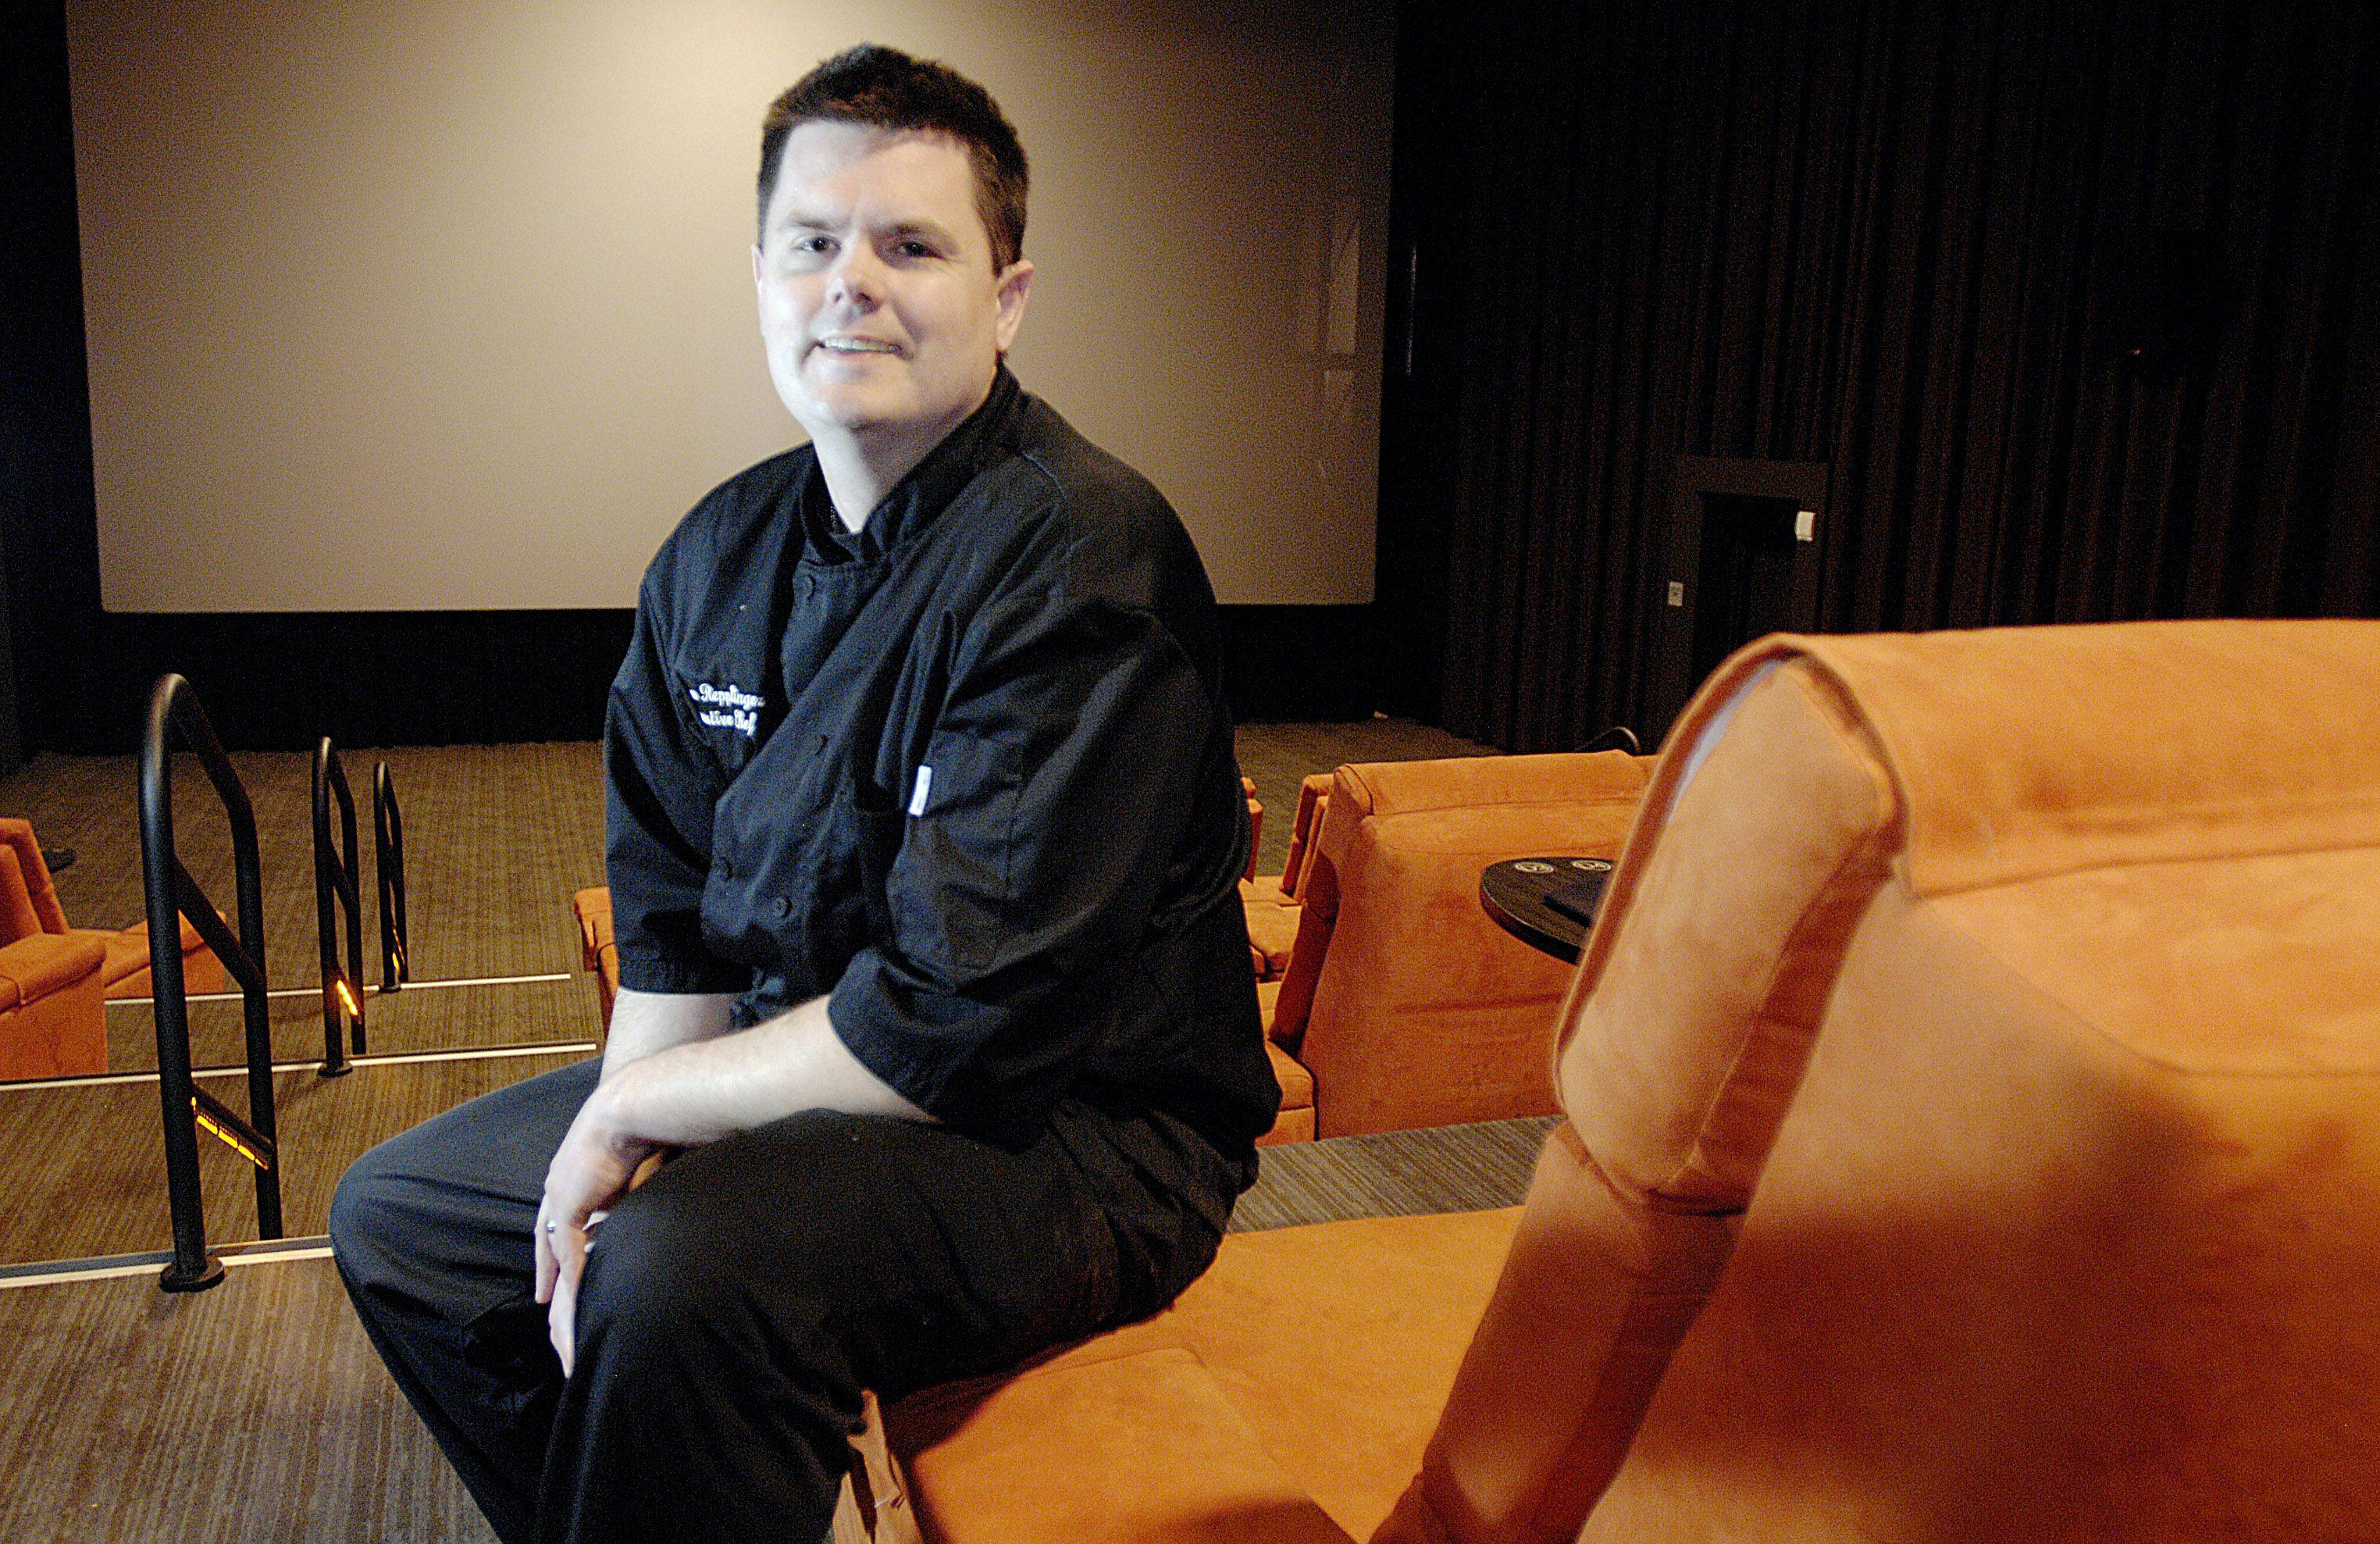 Gold Class Cinema executive chef Ryan Repplinger says cooking for people eating in a dark theater has its challenges.